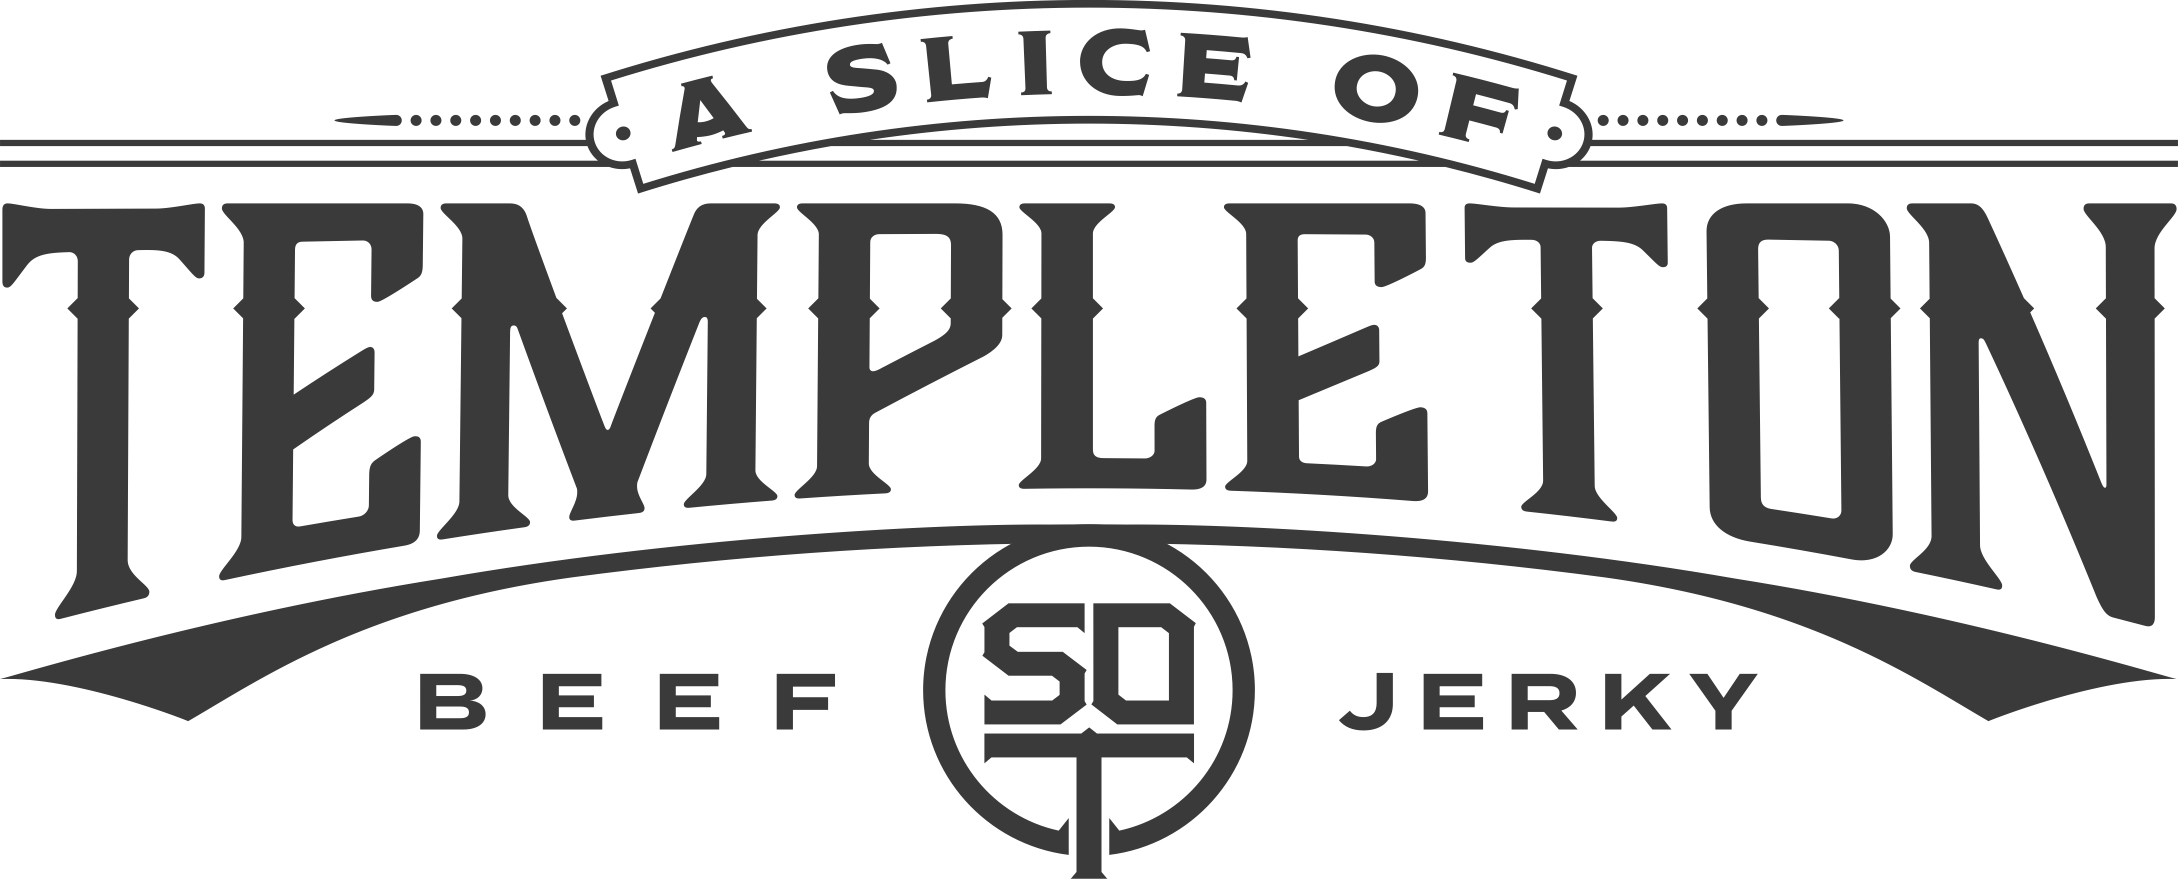 A Slice Of Templeton Beer Jerky